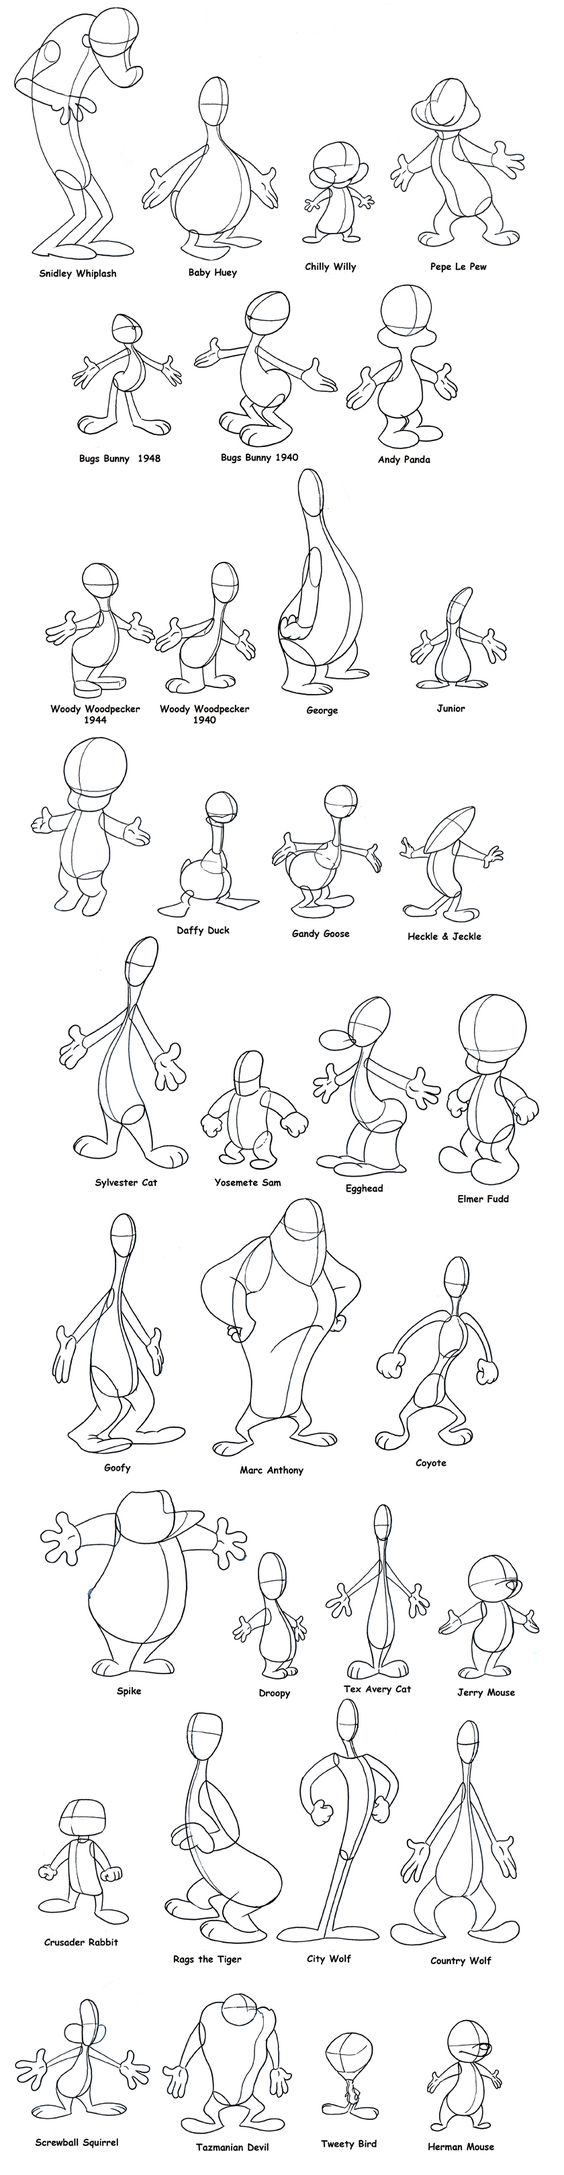 Character Design Basics : Drawings design and lip sync on pinterest